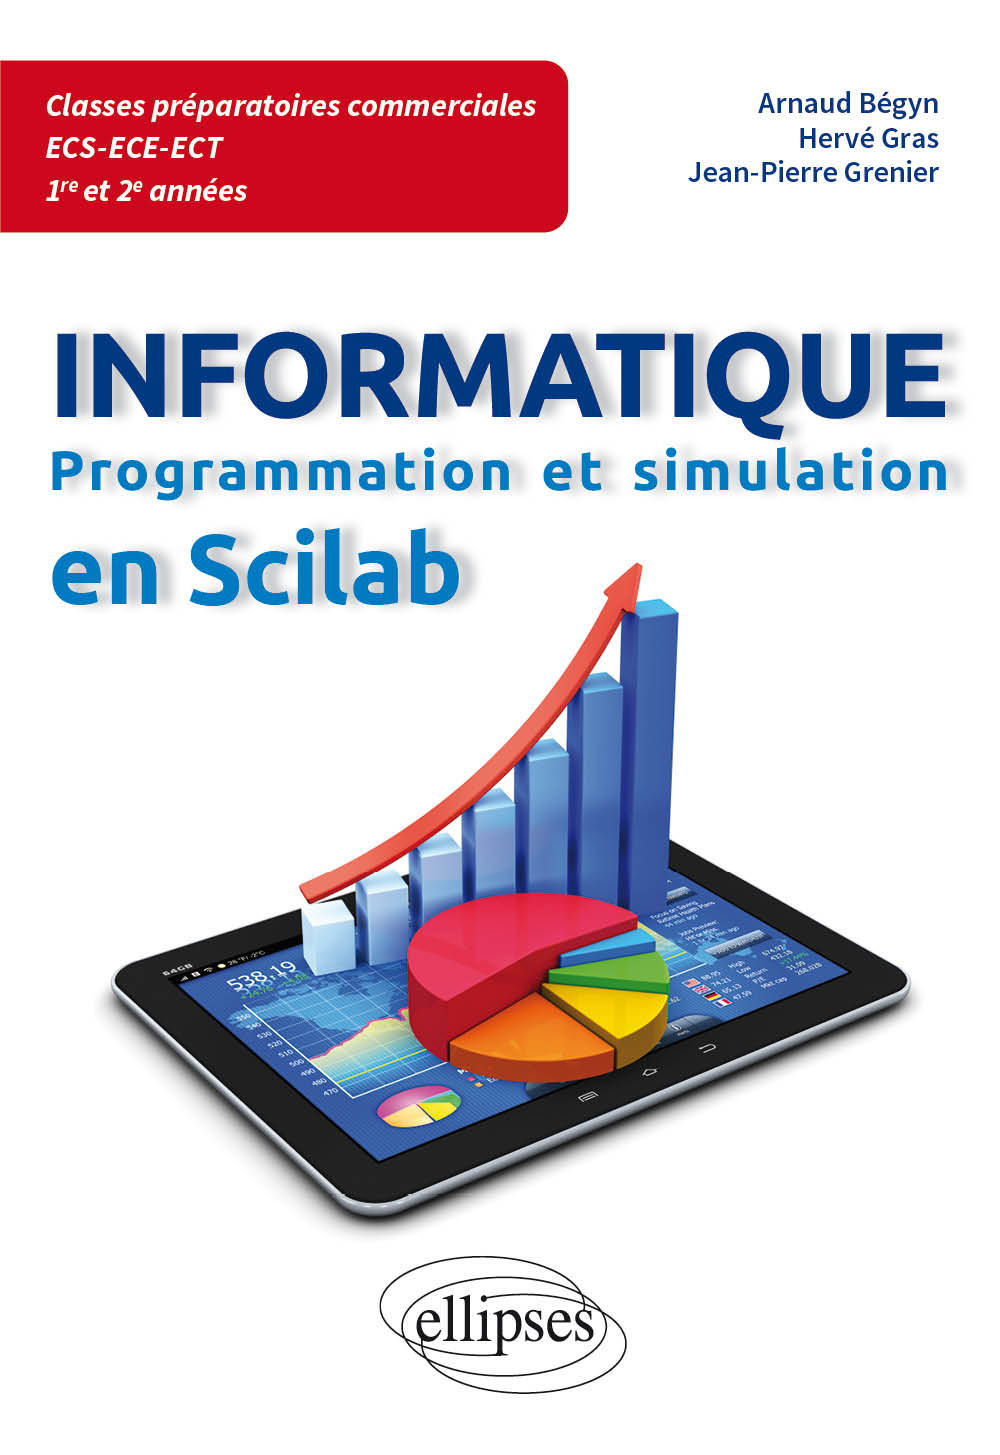 Informatique en classes pr�paratoires ECS/ECE/ECT 1re et 2e ann�es - Programmation et simulation en Scilab